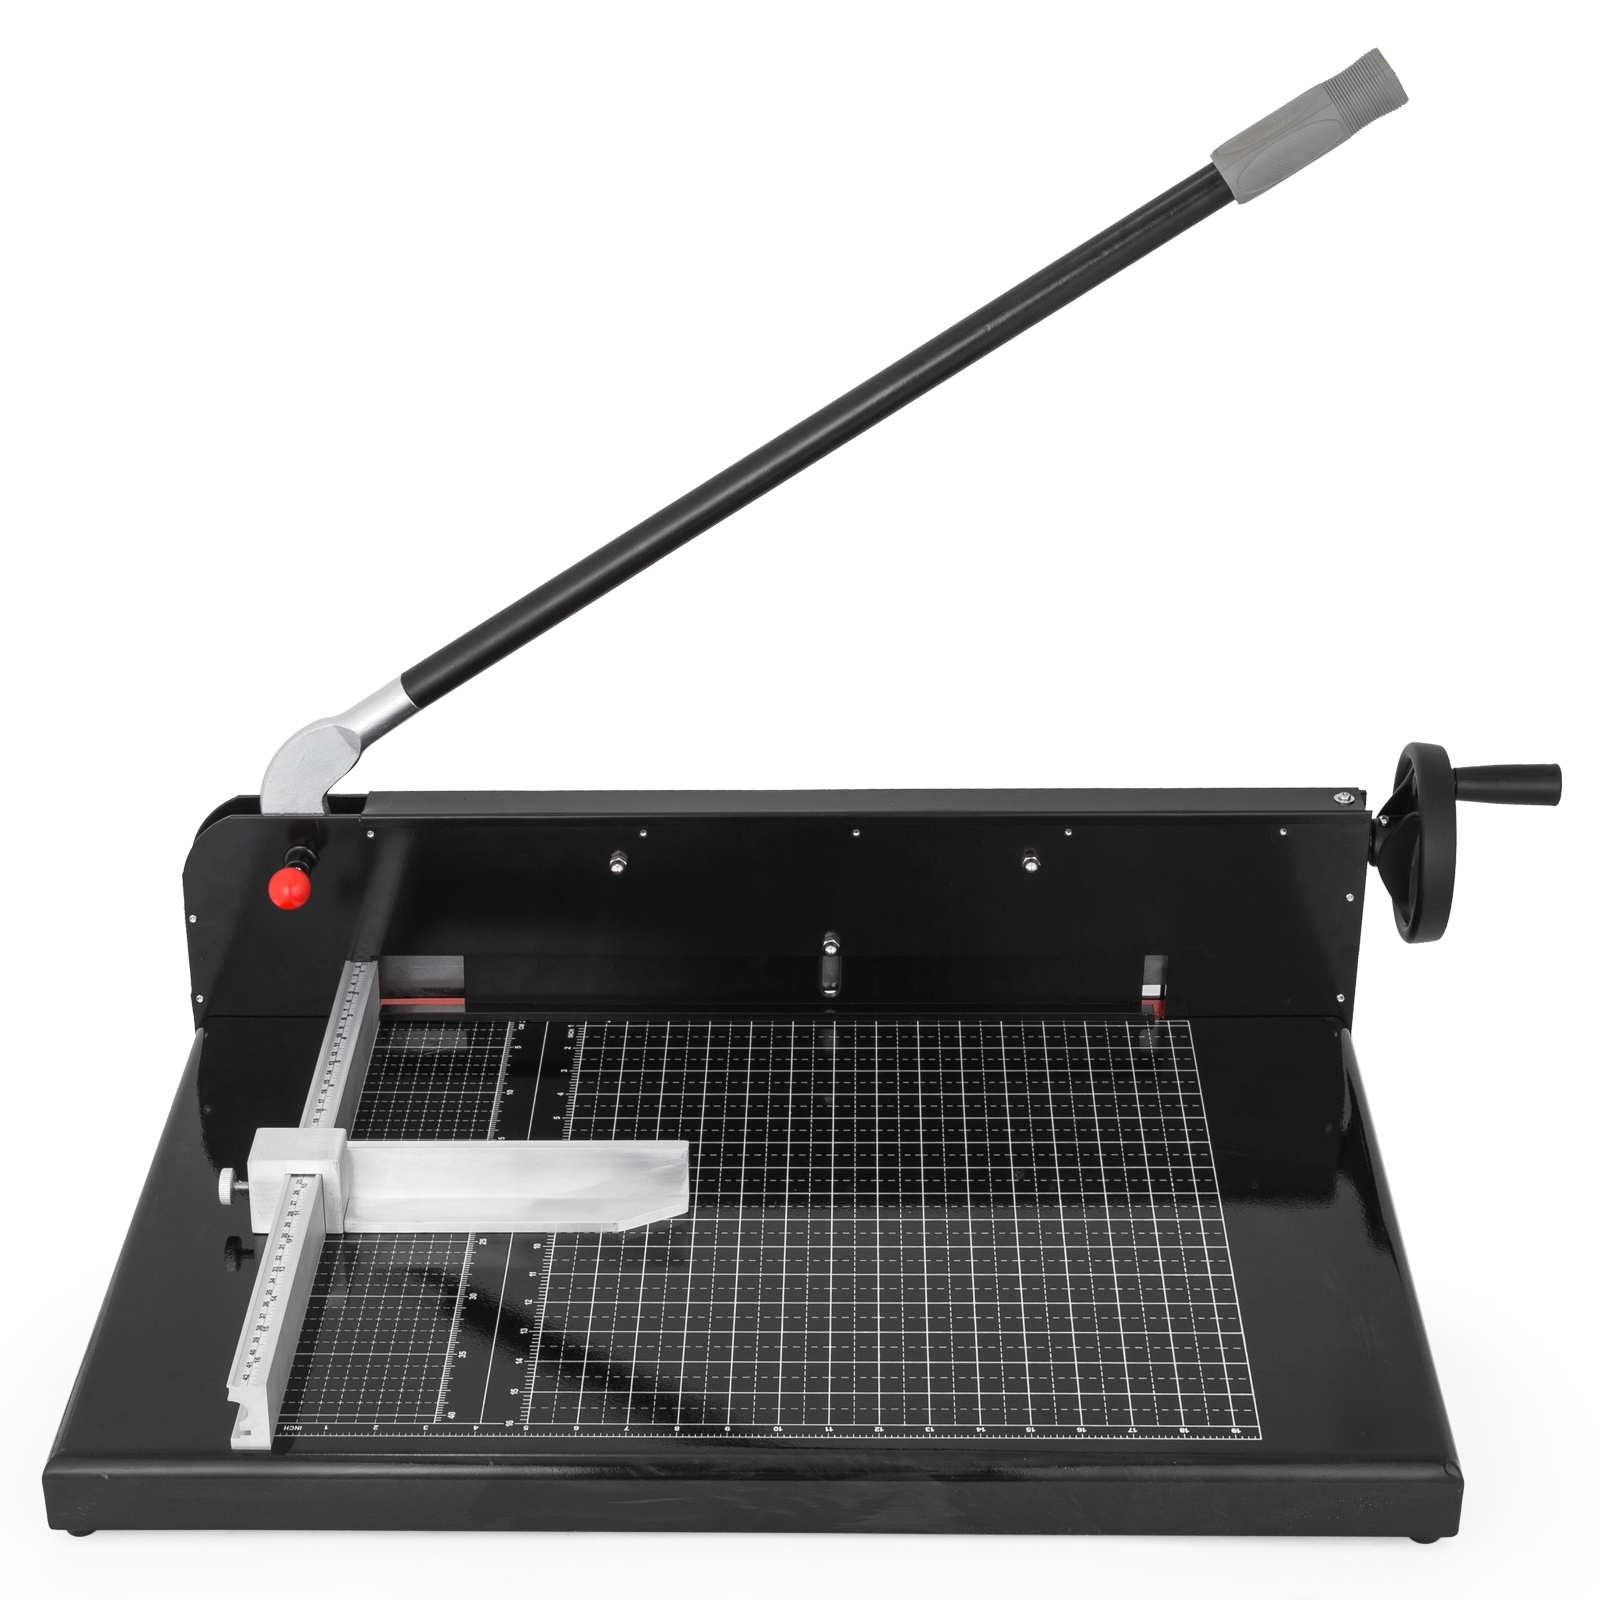 12-17-19-034-Width-Guillotine-Paper-Cutter-Stack-Paper-Guillotine-Trimmer thumbnail 51